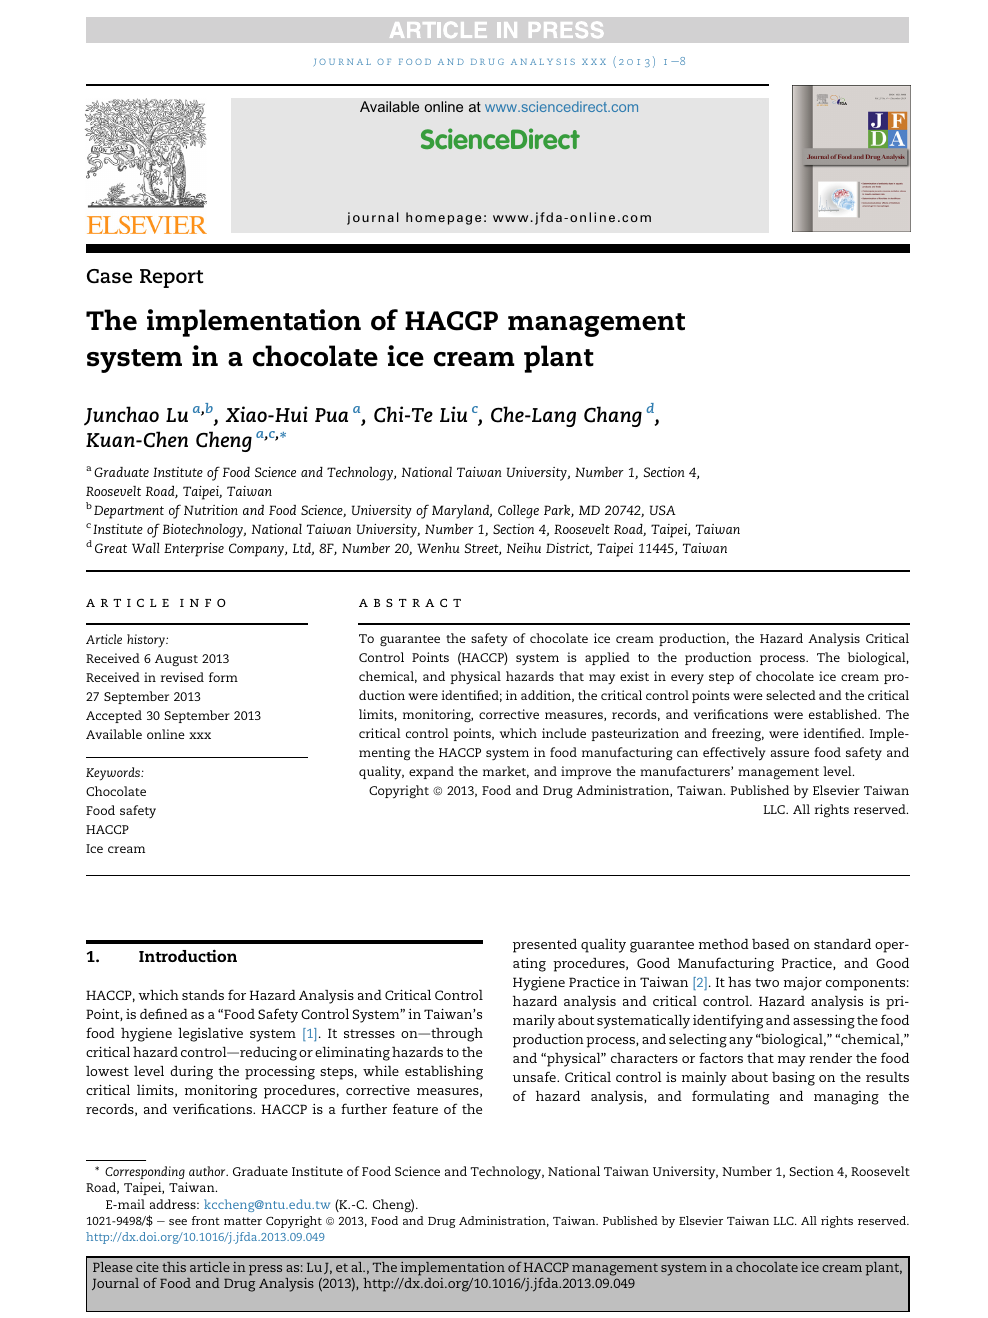 The implementation of HACCP management system in a chocolate